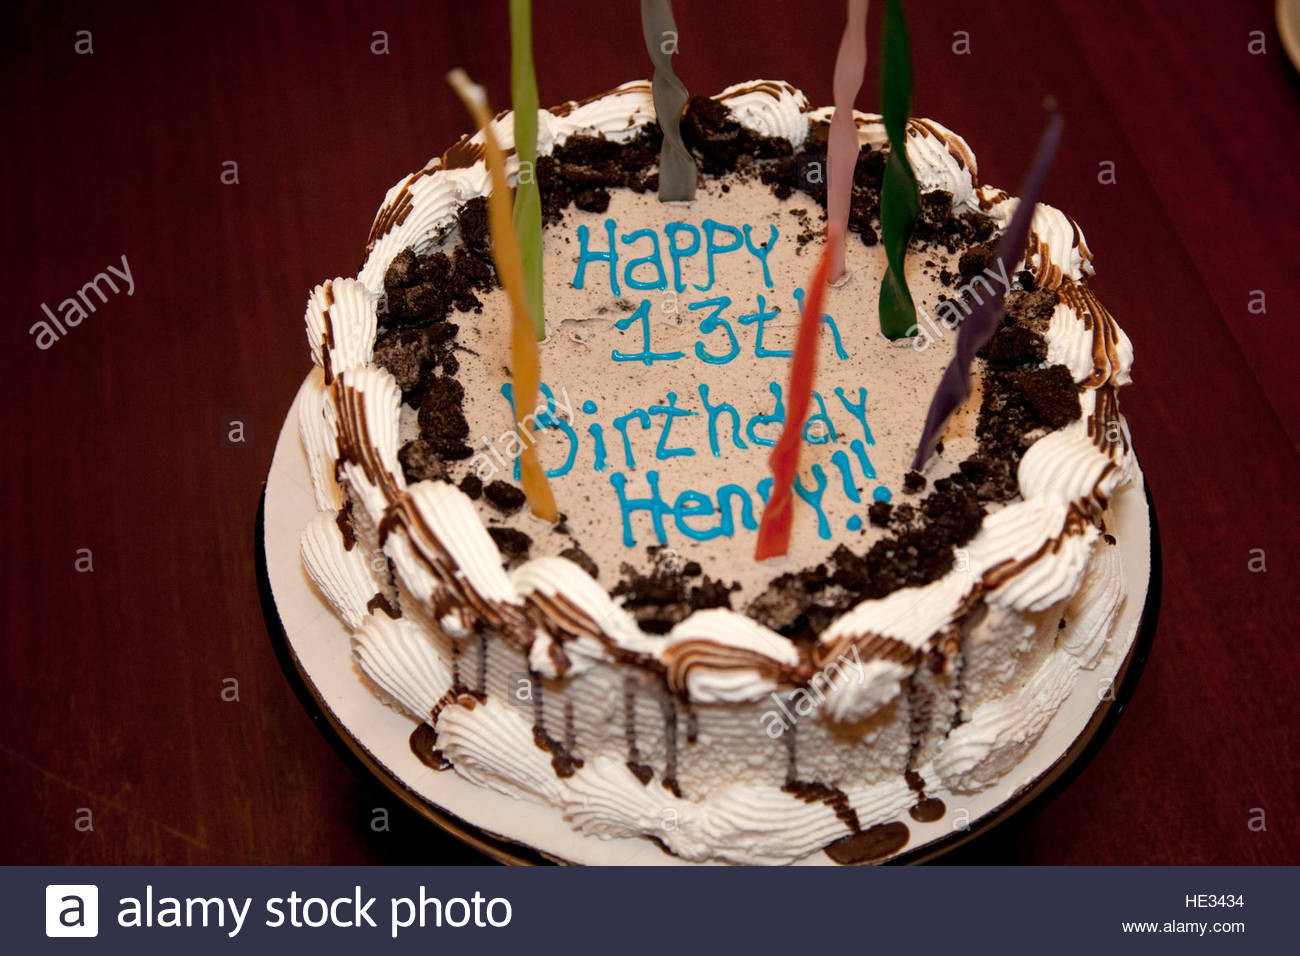 Best ideas about Birthday Cake For 13 Year Old Boy . Save or Pin Decorative happy birthday cake with candles for a 13 year Now.